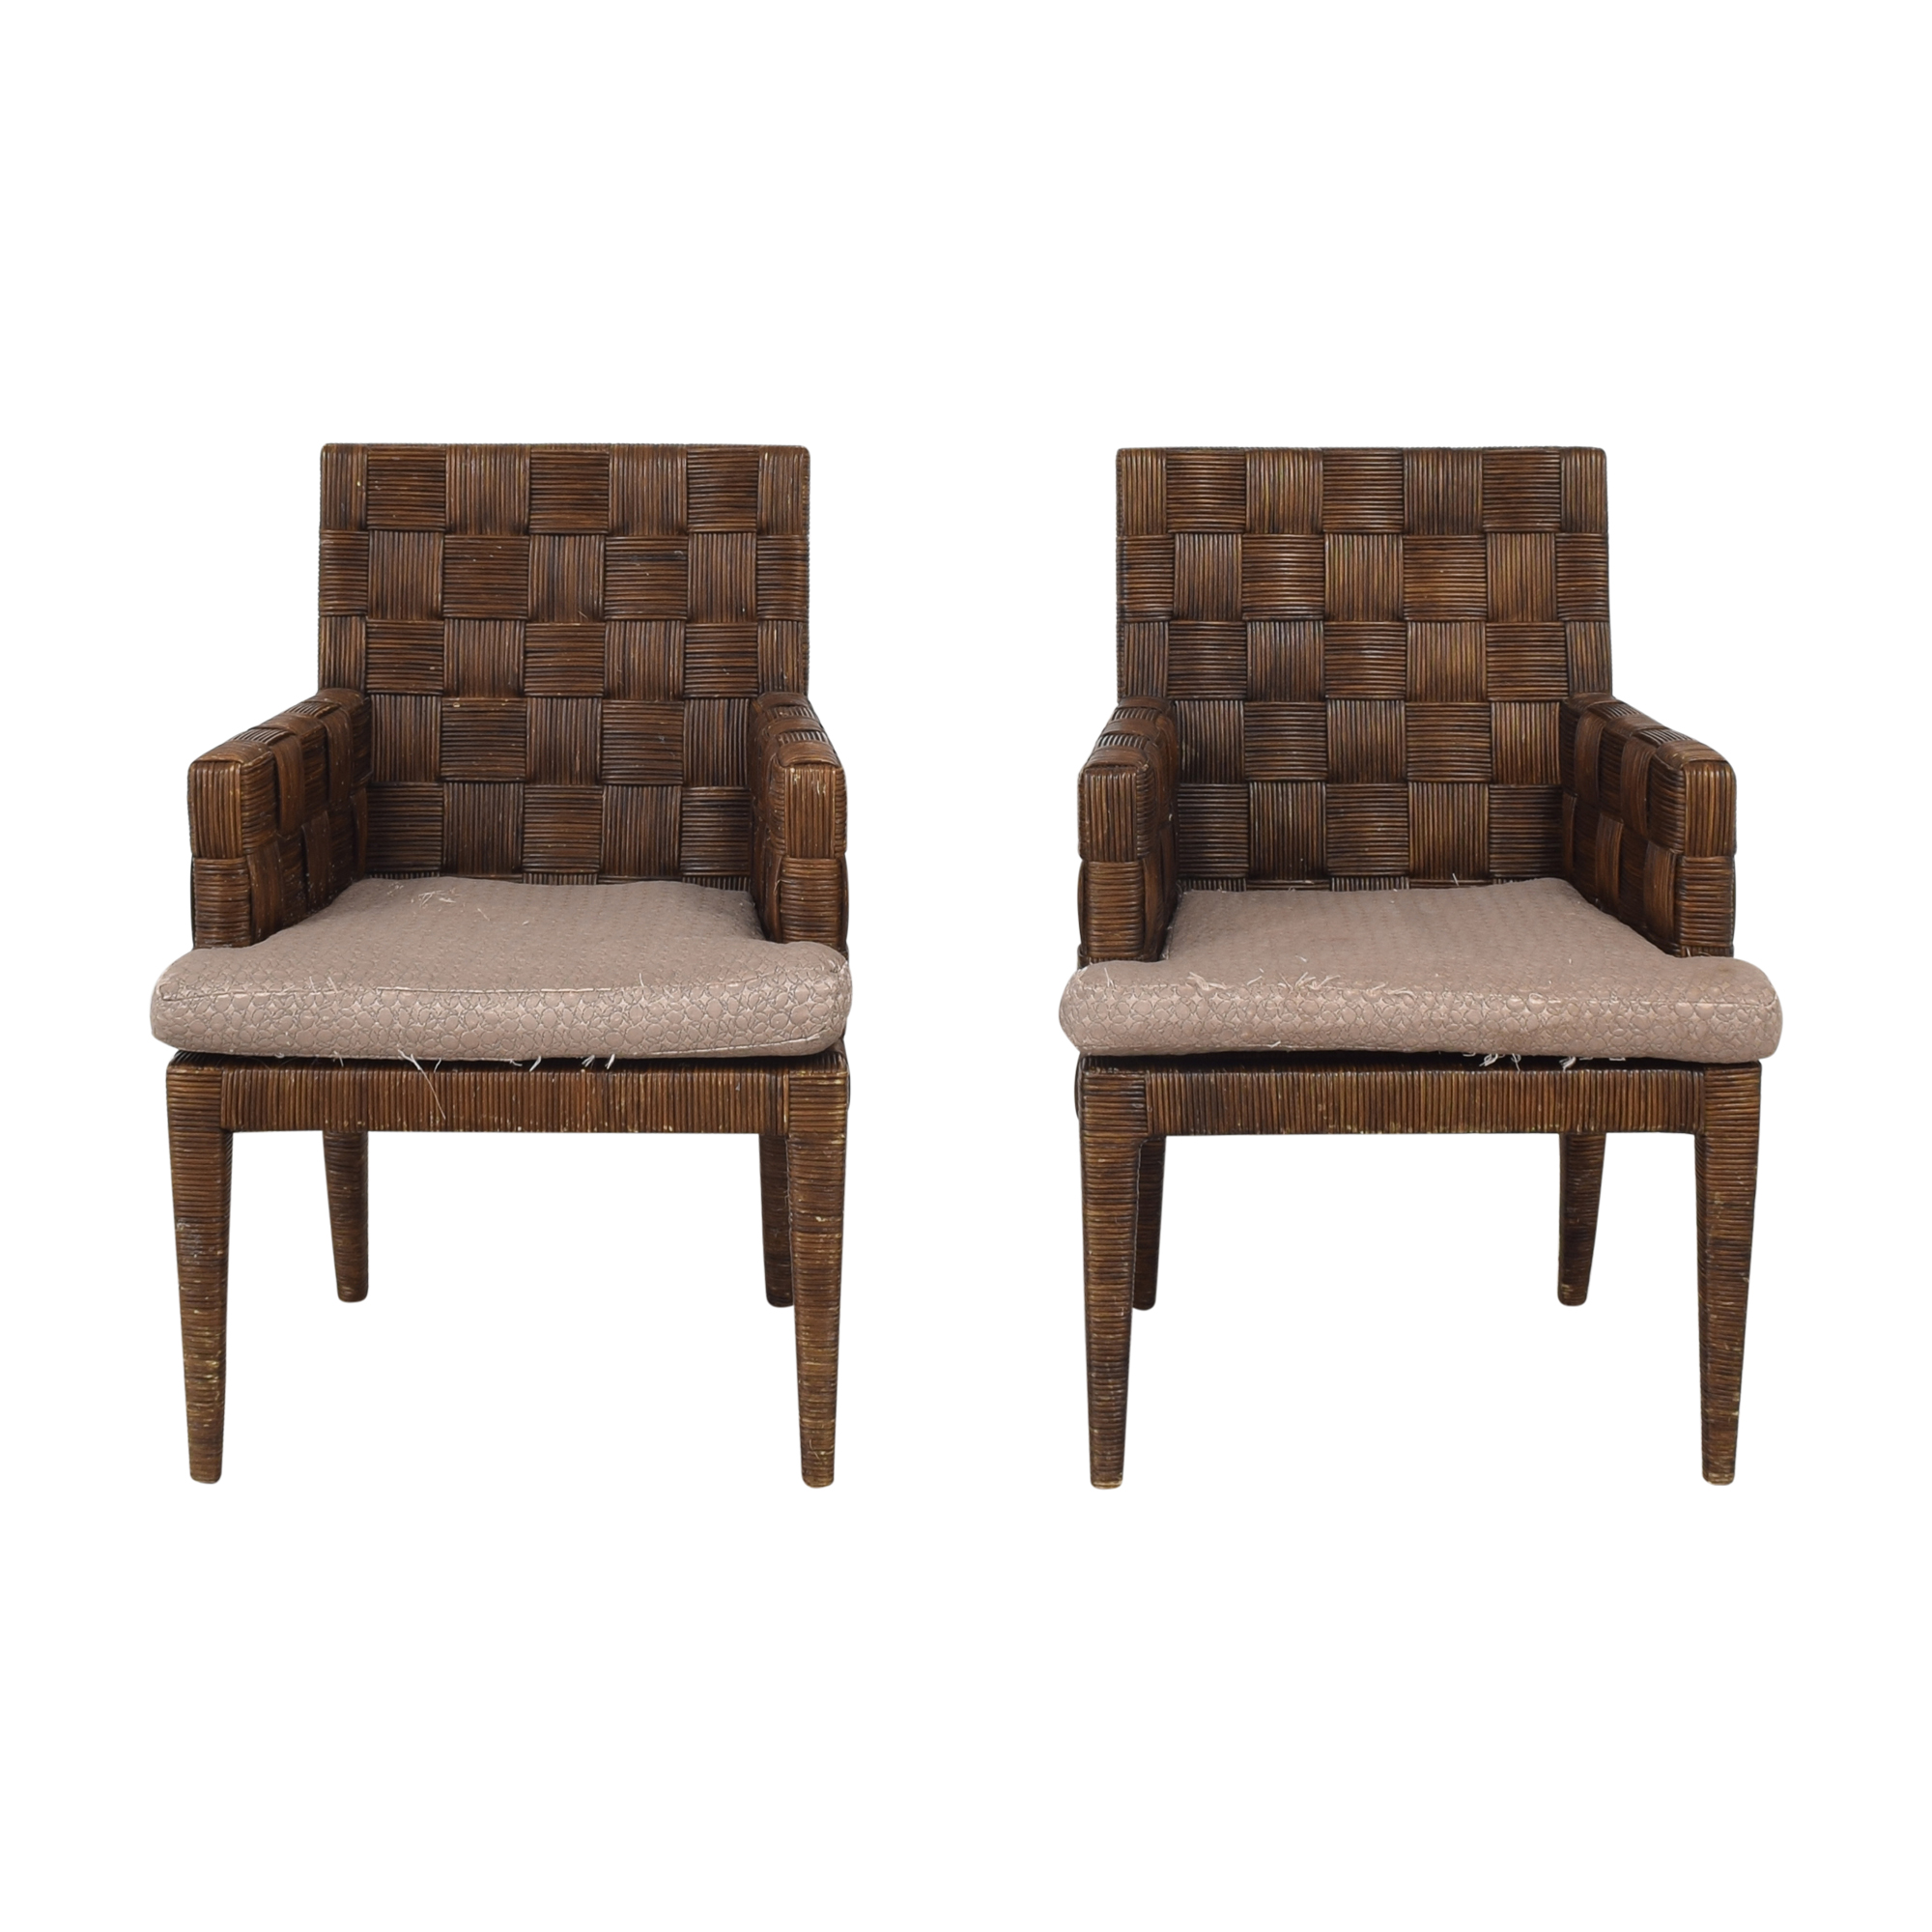 Donghia Donghia by John Hutton Block Island Dining Armchairs price